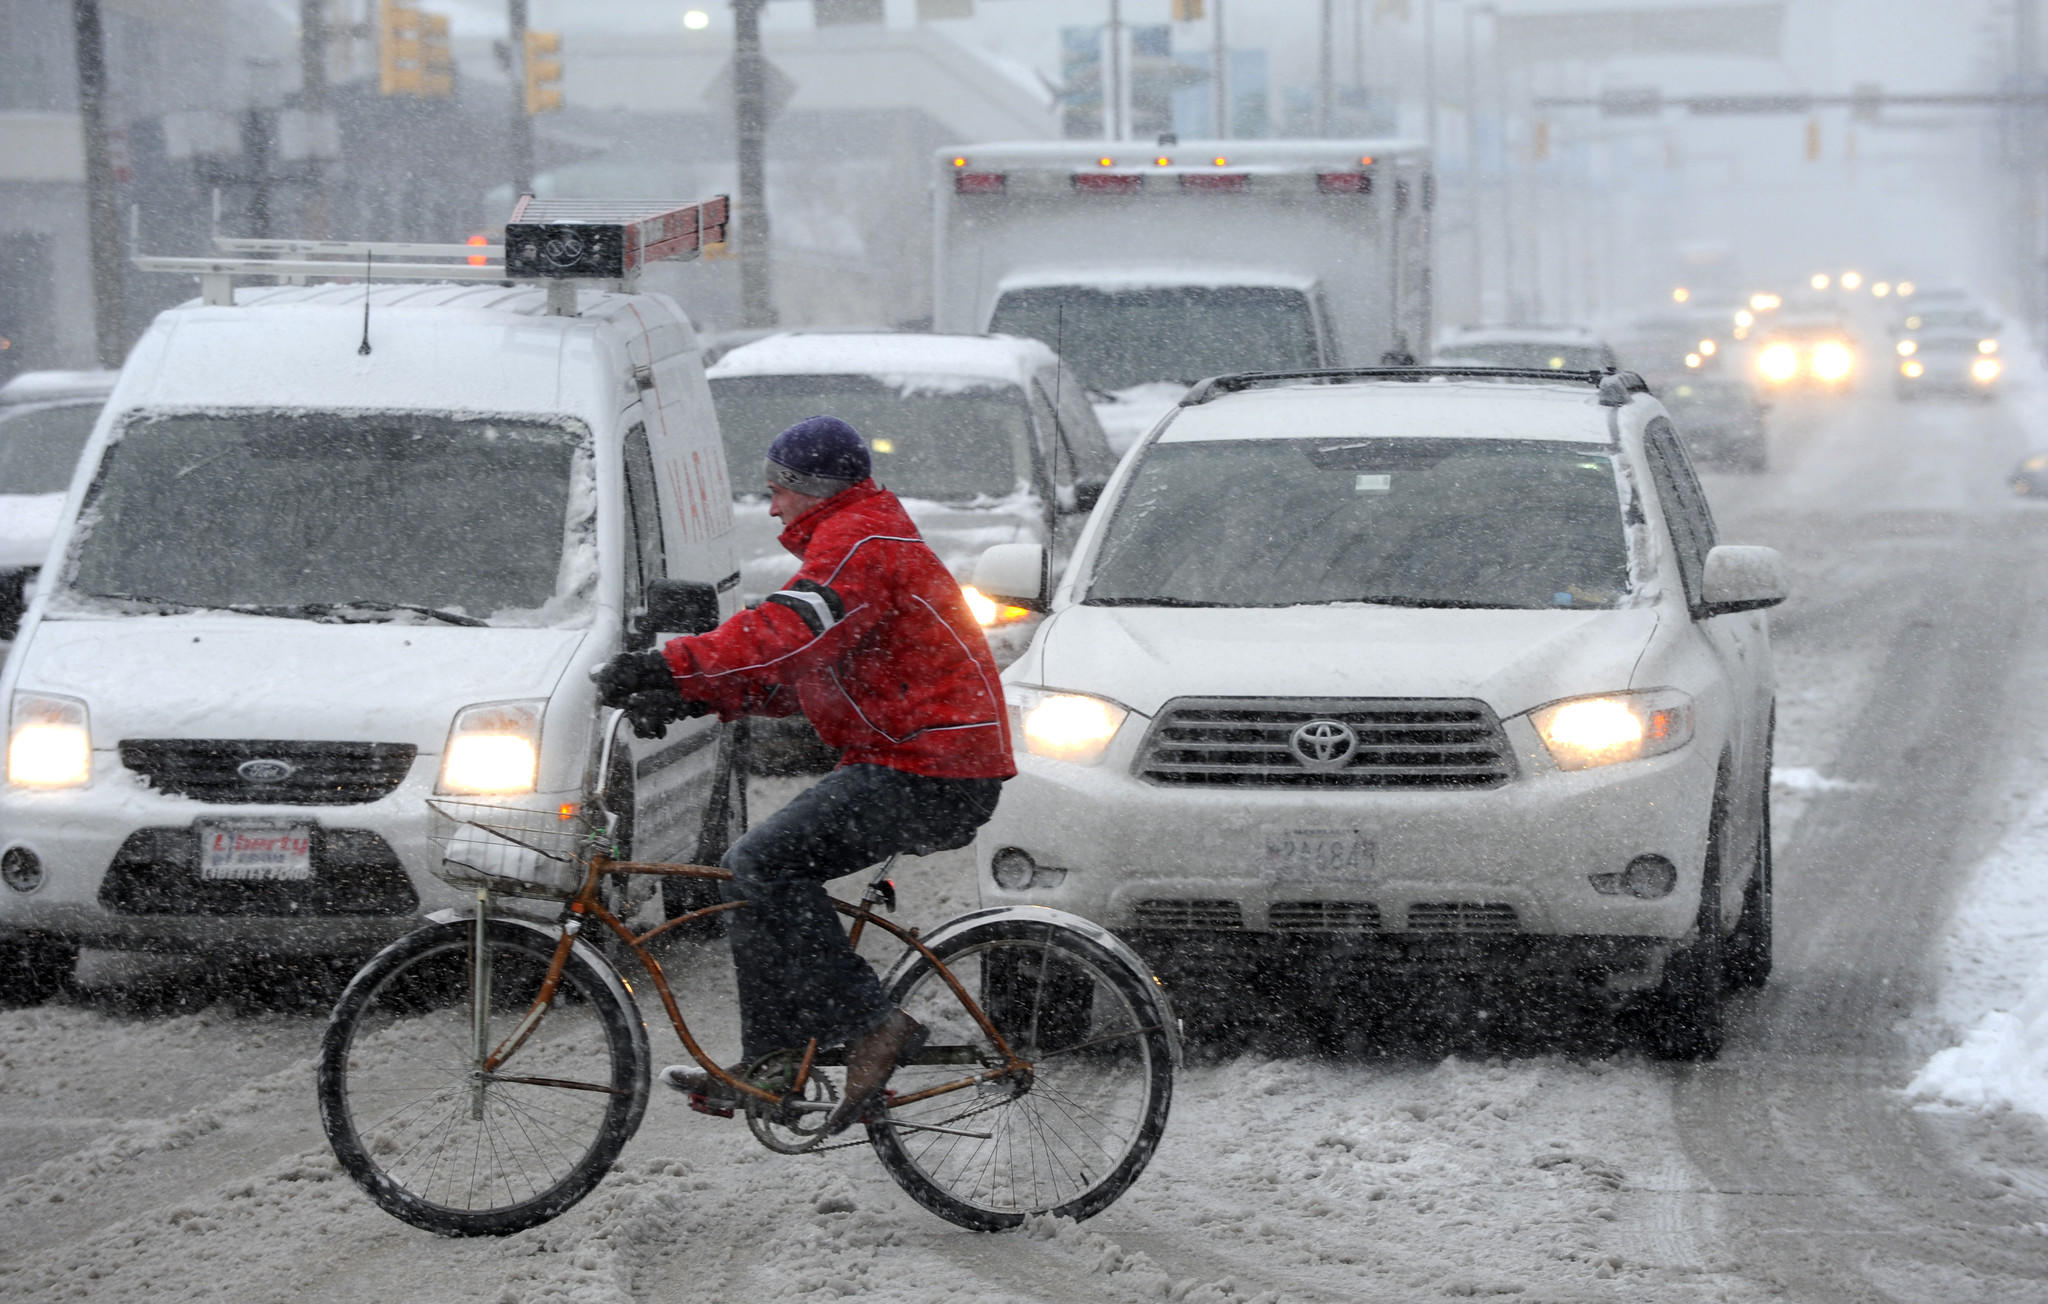 Ryan Weir, 29, rides his bike across Pratt St. at Calvert St. about 3:30pm on his way to Whole Foods to buy groceries. A snow storm covered the Inner Harbor and surrounding areas with several inches of snow.